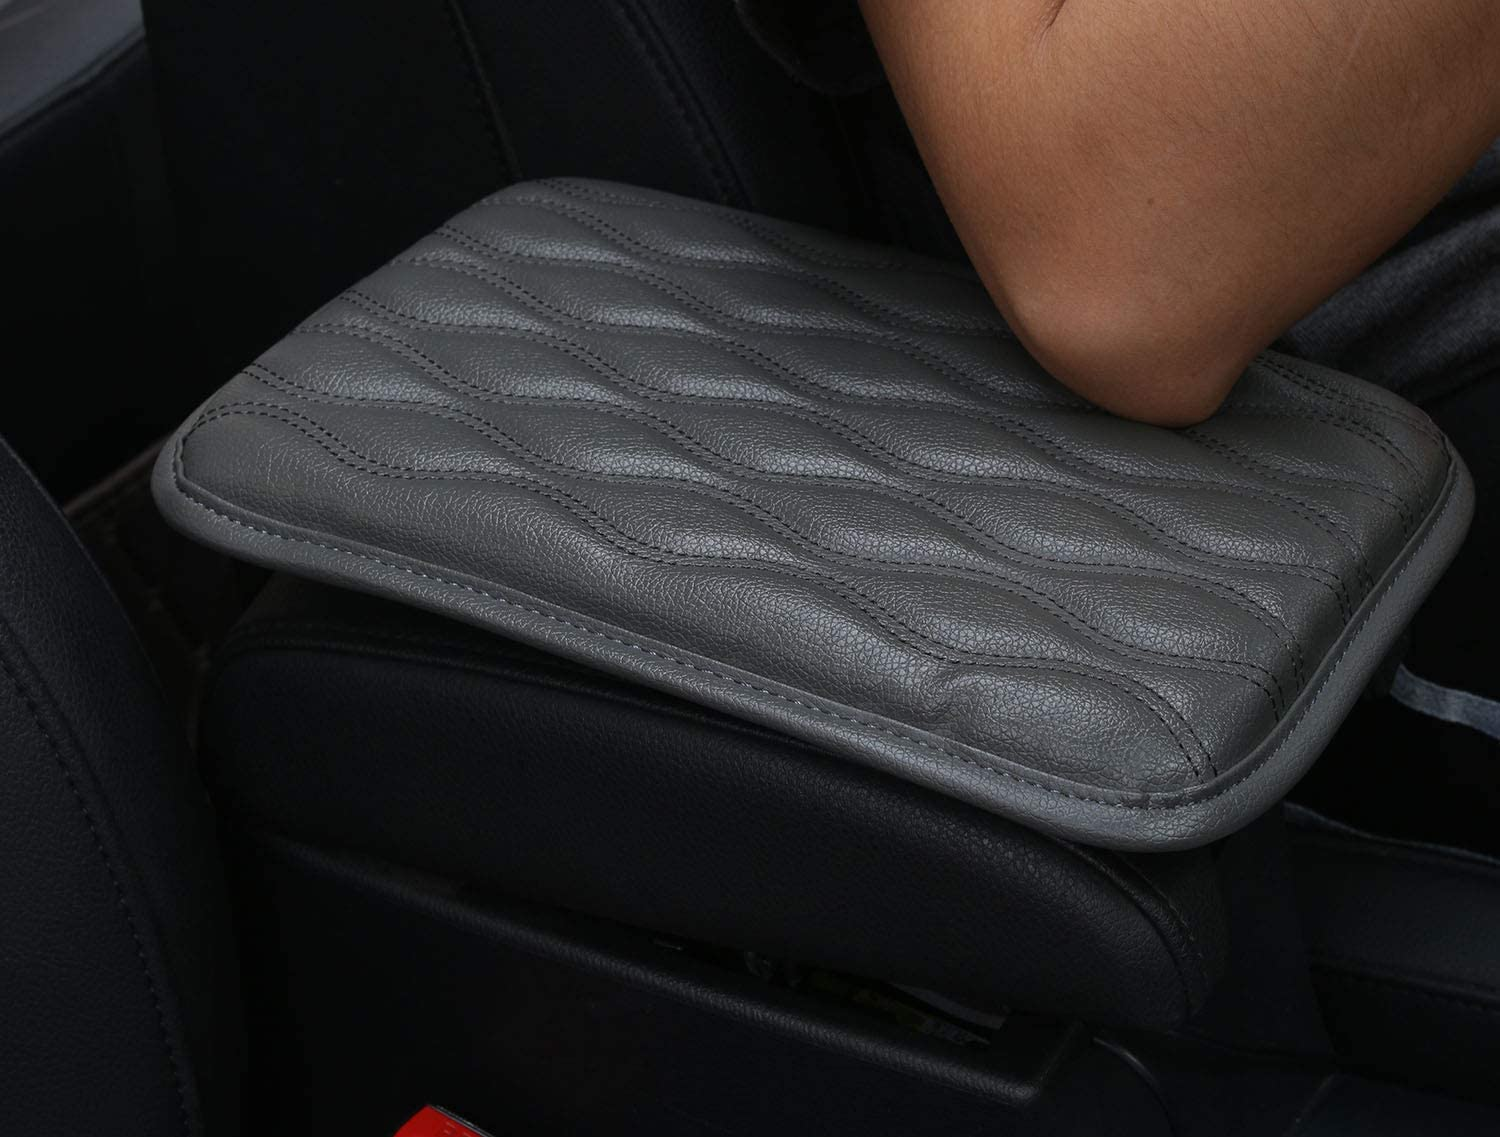 Alusbell Auto Center Console Pad,PU Leather Car Armrest Seat Box Cover Protector Protects from Dirt,Damage,Pet Scratches,Old Damaged Consoles